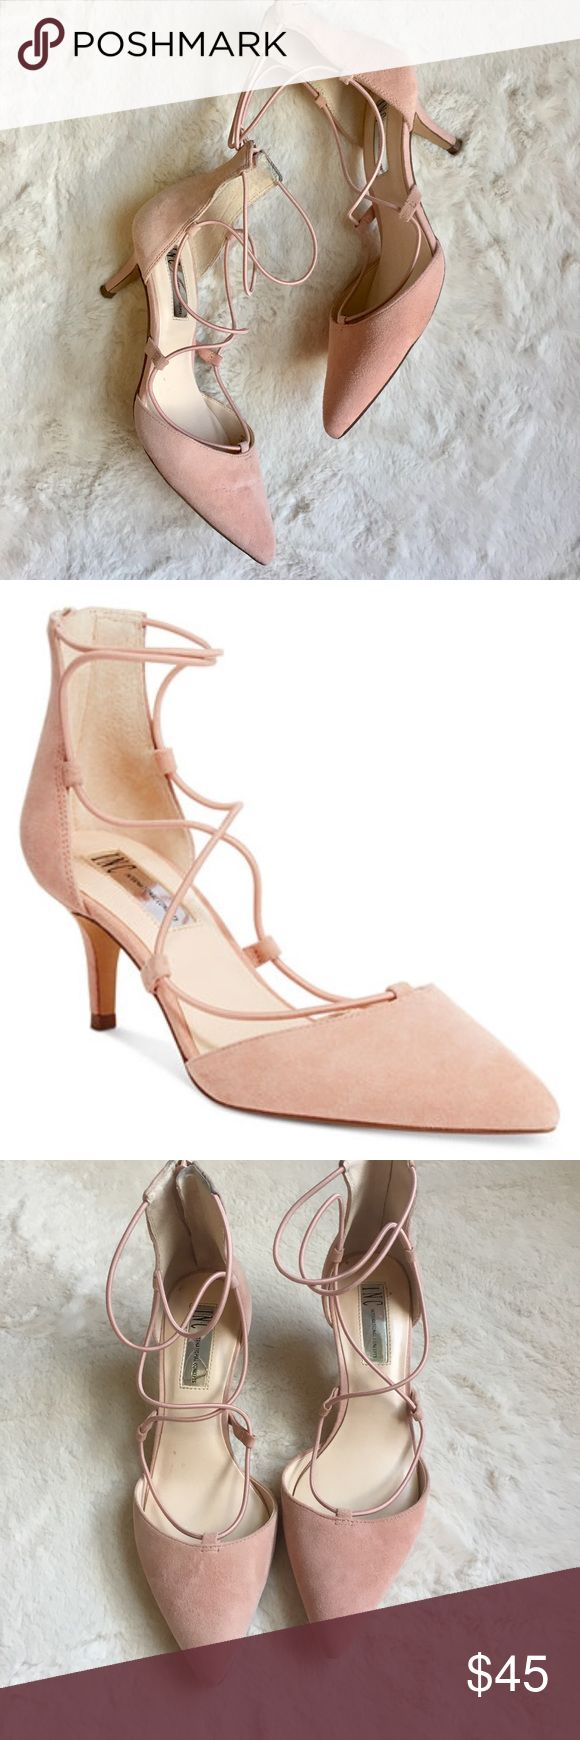 """Blush Pink Suede Daree Lace-Up Pumps Item: INC Designed for Macy's Daree Pink Elastic Lace-Up Heels with pointed toe, 2.5"""" kitten heel & back zipper closure Size: 7 Condition: Good pre-owned - worn three times - shows wear to soles & heel tips, some rub off marks from dark denim & some marks on suede (see pics)  *These shoes will definitely not be comfortable for wide feet! Elastic laces are very snug.* INC International Concepts Shoes Heels"""